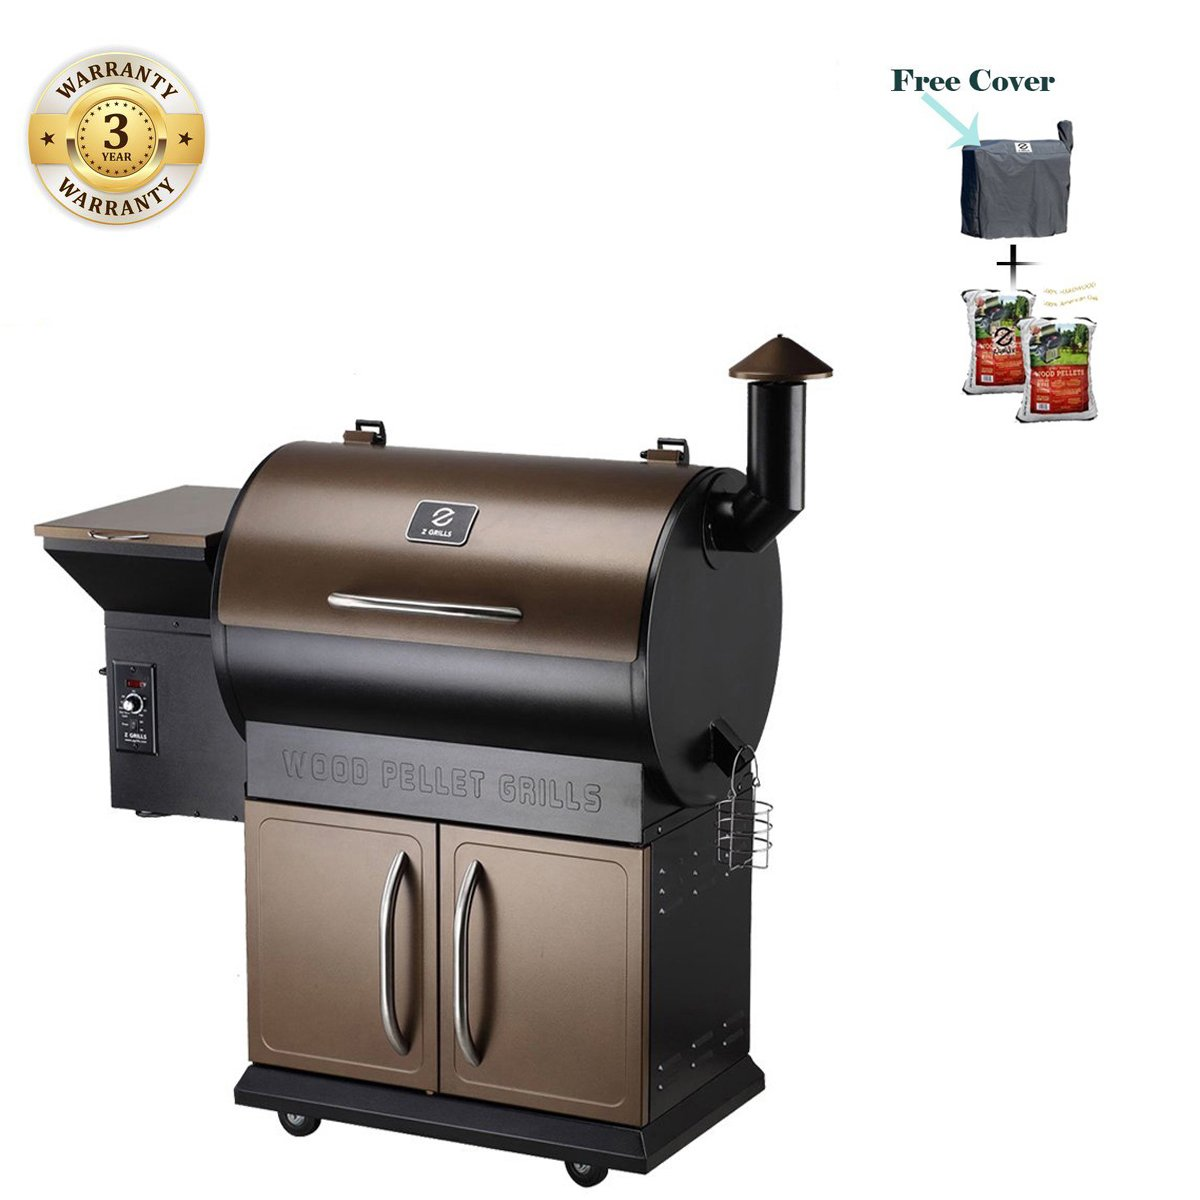 Wood Pellet Grill & Smoker with Patio Cover,700 Cooking Area 7 in 1- Electric Digital Controls Grill for Outdoor BBQ Smoke, Roast, Bake, Braise and BBQ with Storage Cabinet (Free 2 Wood Pellets)